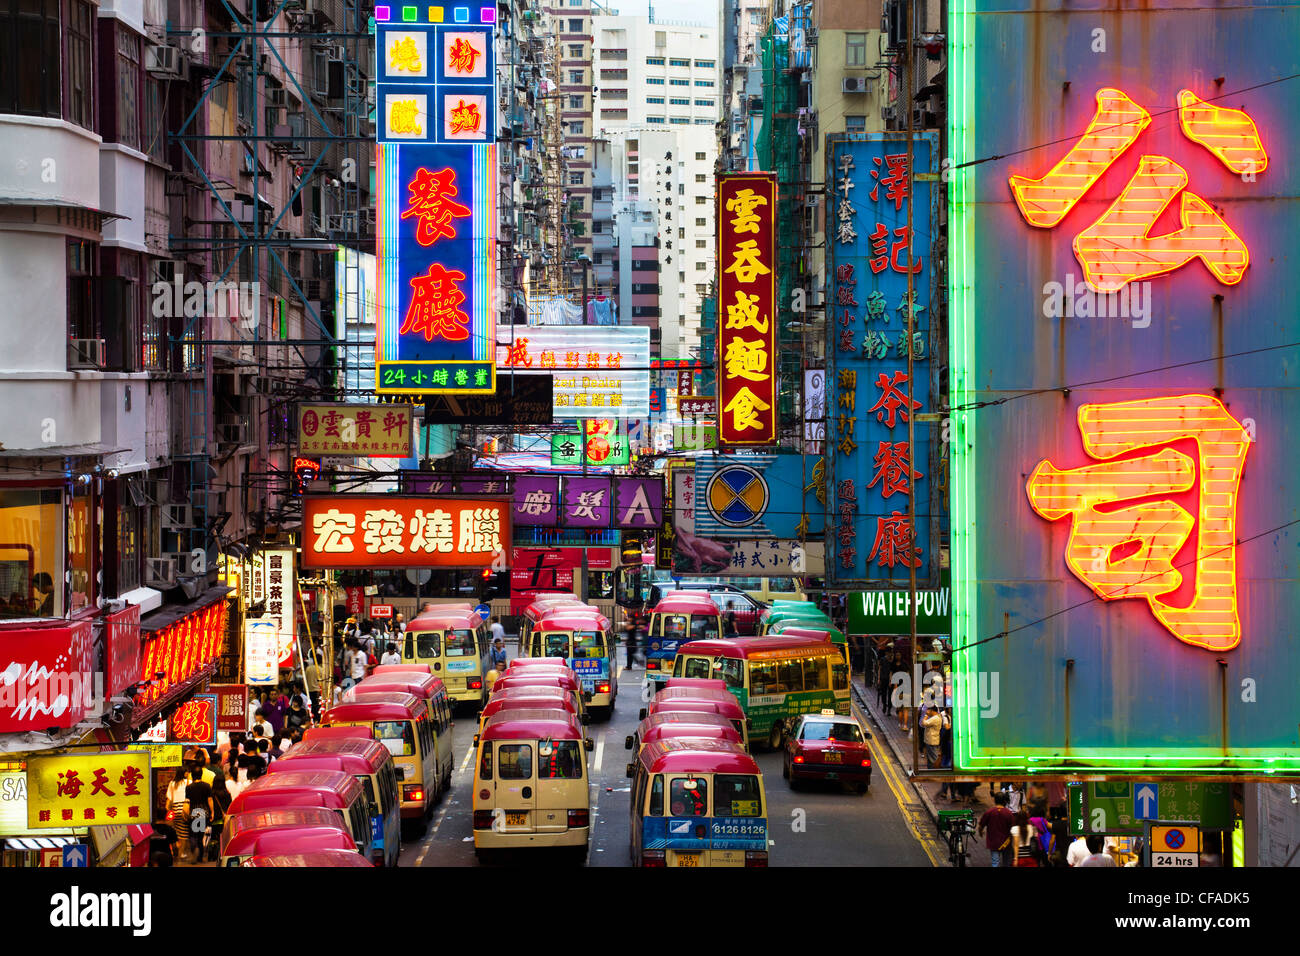 Scène de rue, mini bus station et néons de Mong Kok, Kowloon, Hong Kong, Chine Photo Stock